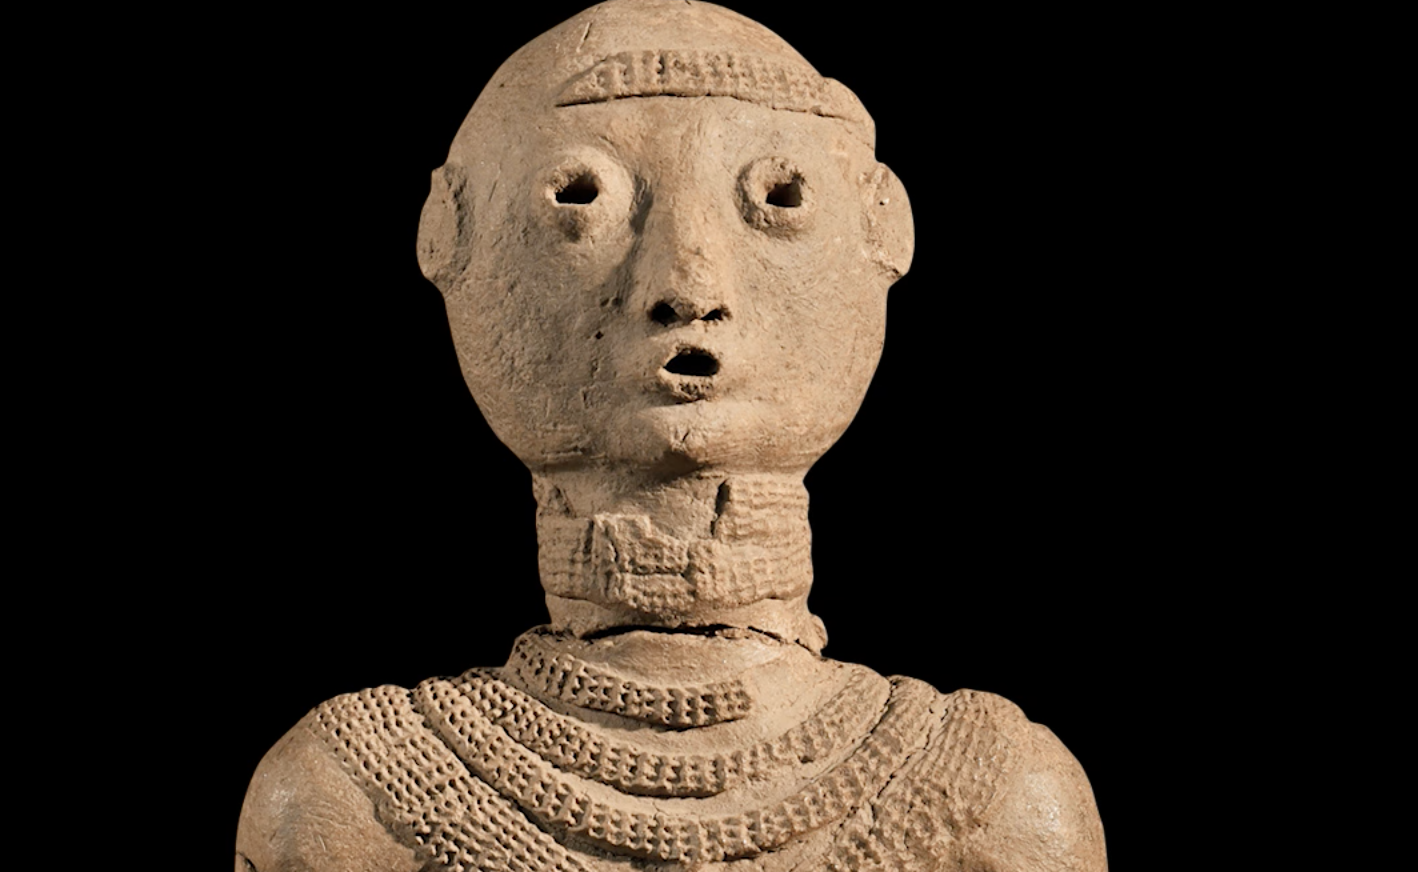 Image of sculpture depicting human figure